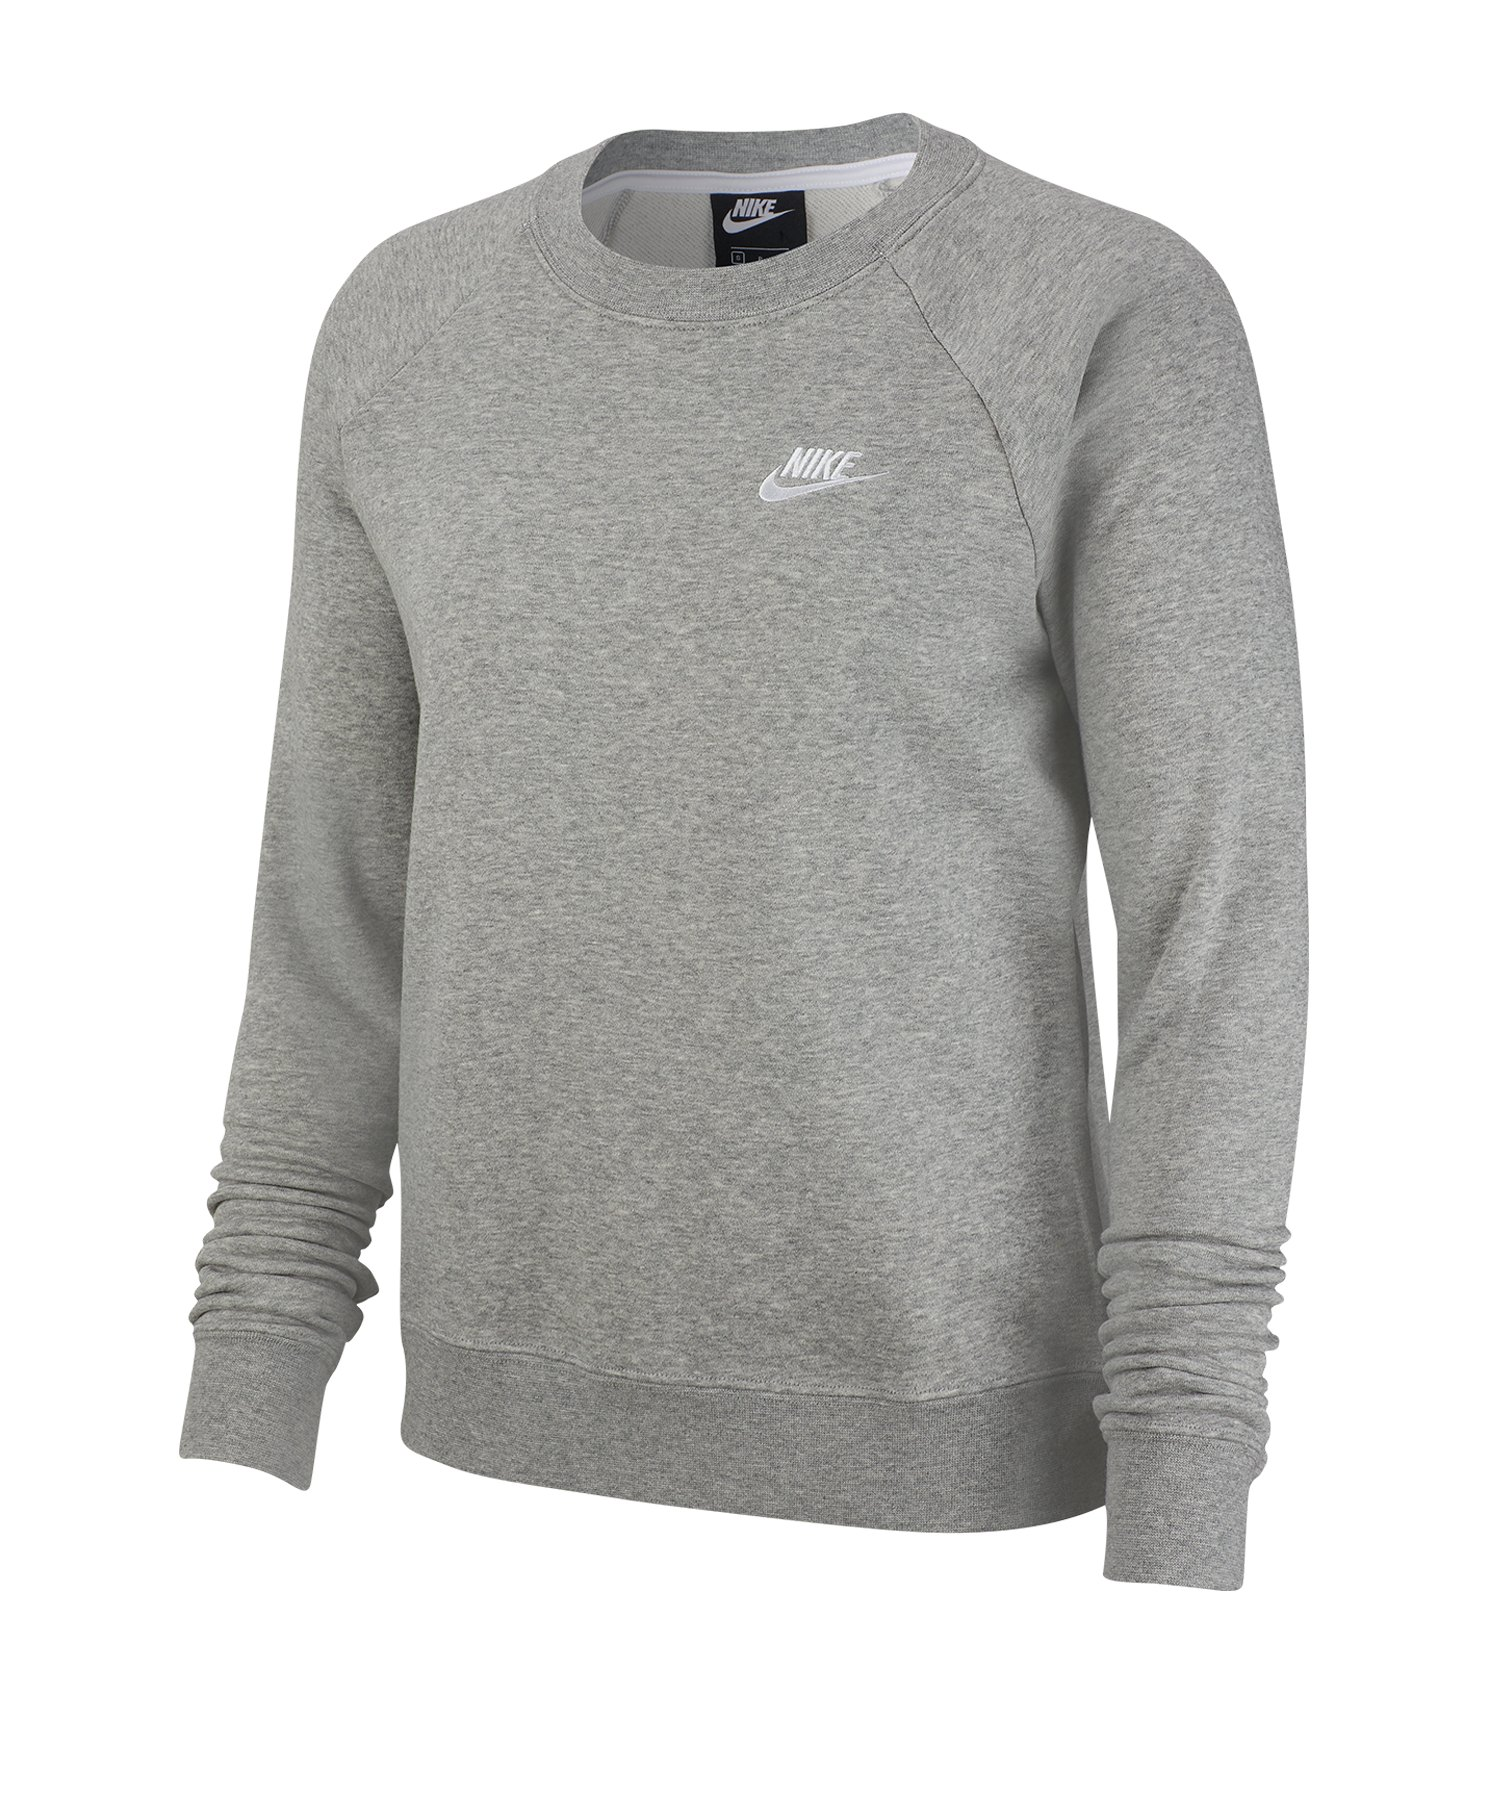 Nike Essential Fleece Pullover Damen Grau F063 - grau